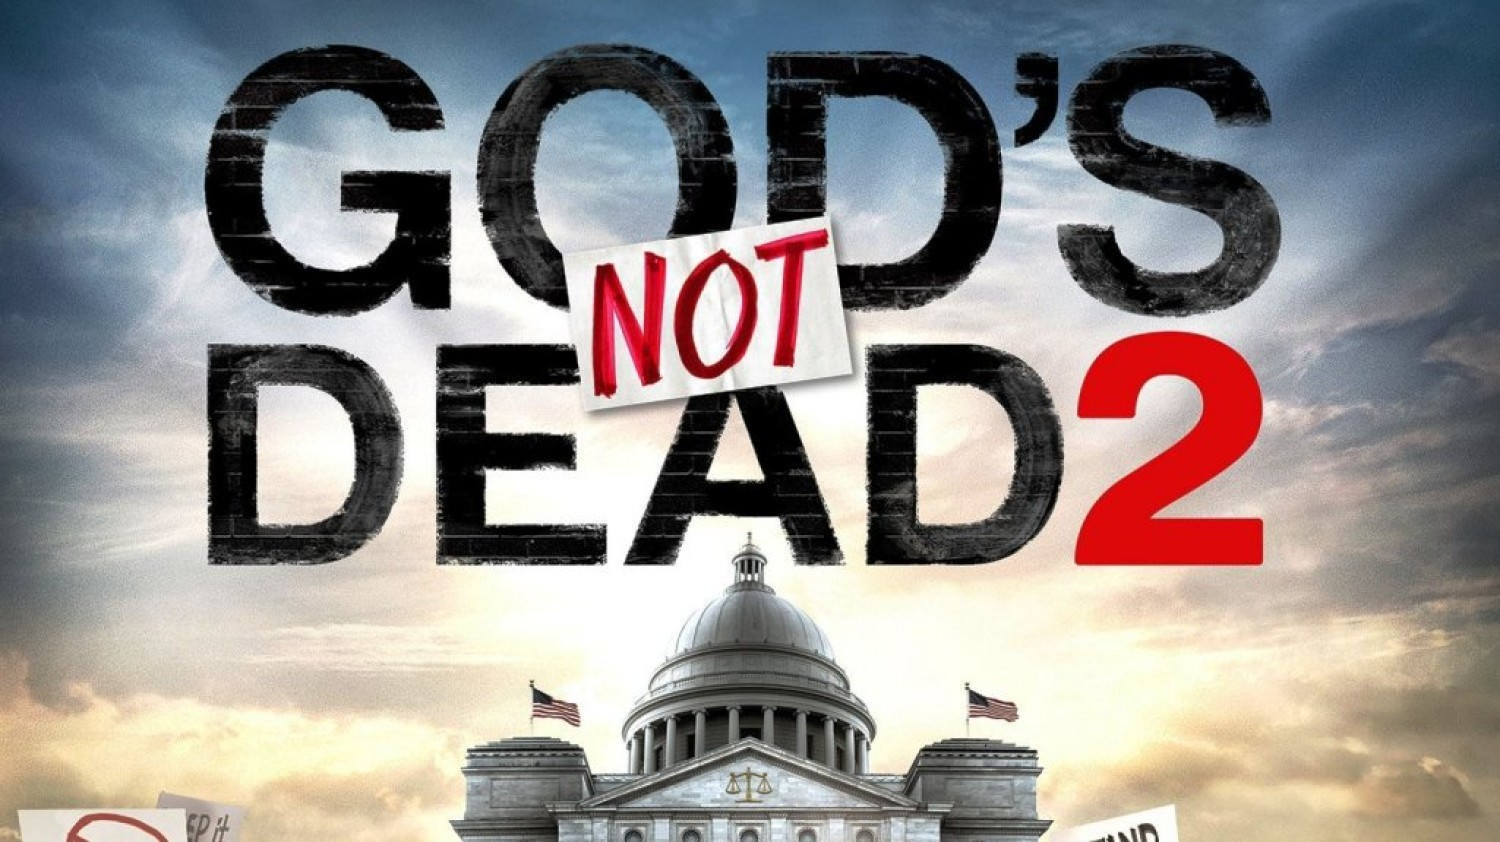 God's Not Dead 2 (2016) Harold Cronk - Movie Review